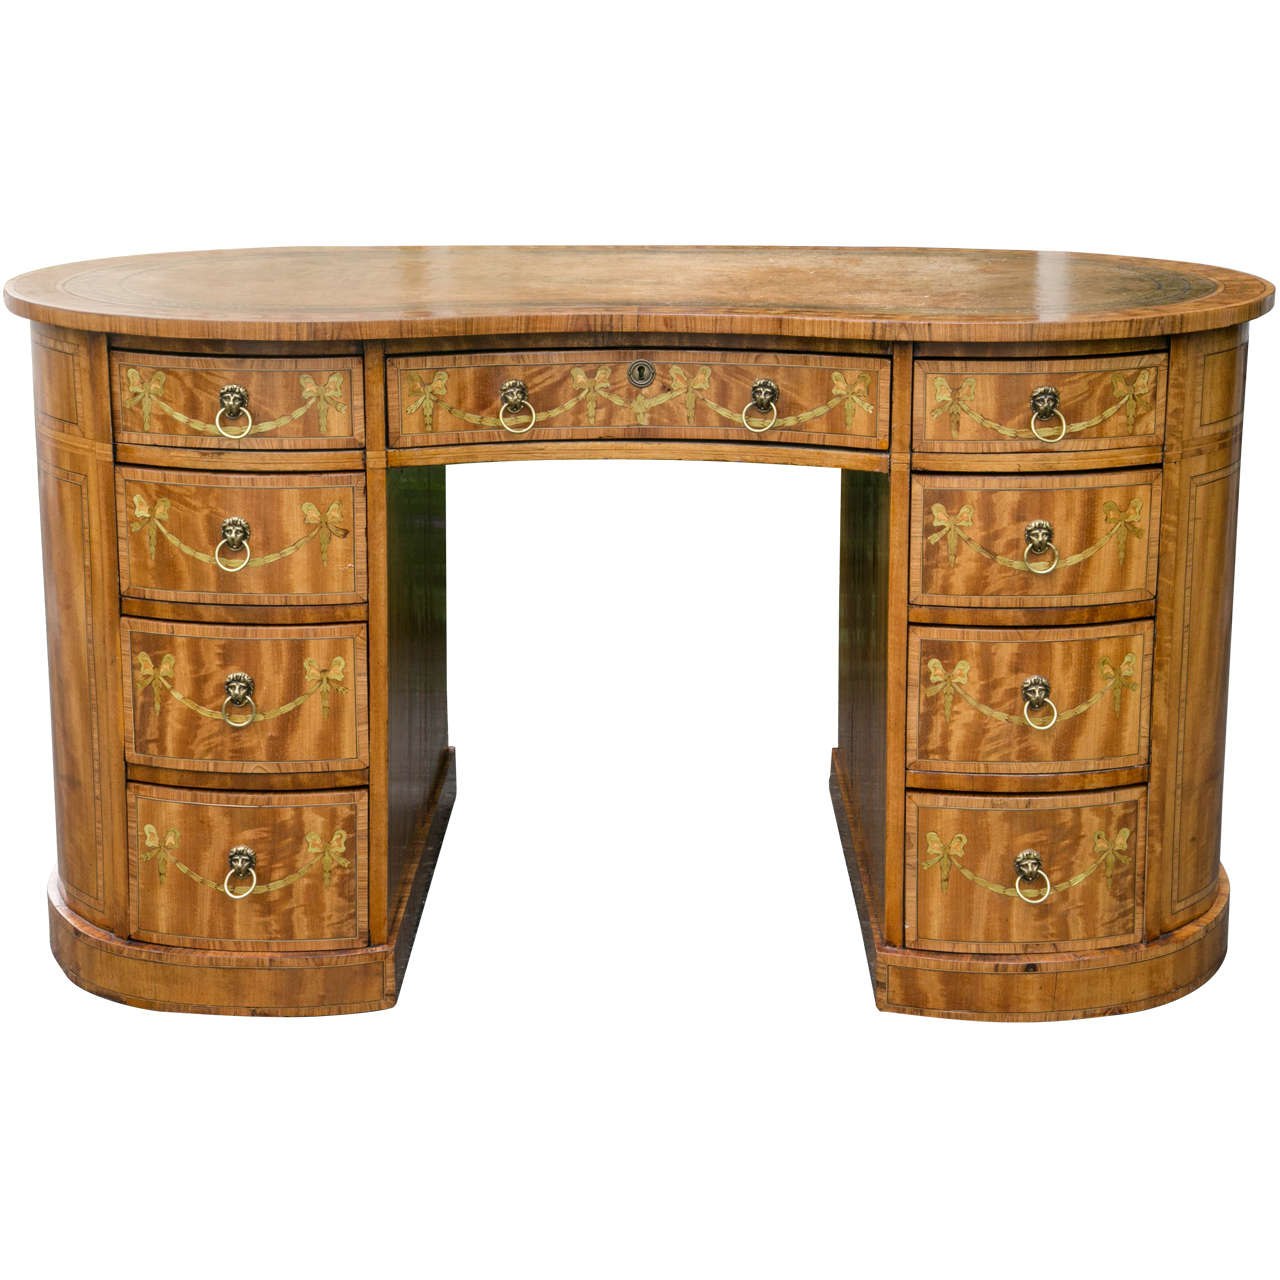 Edwardian Kidney Shaped Desk